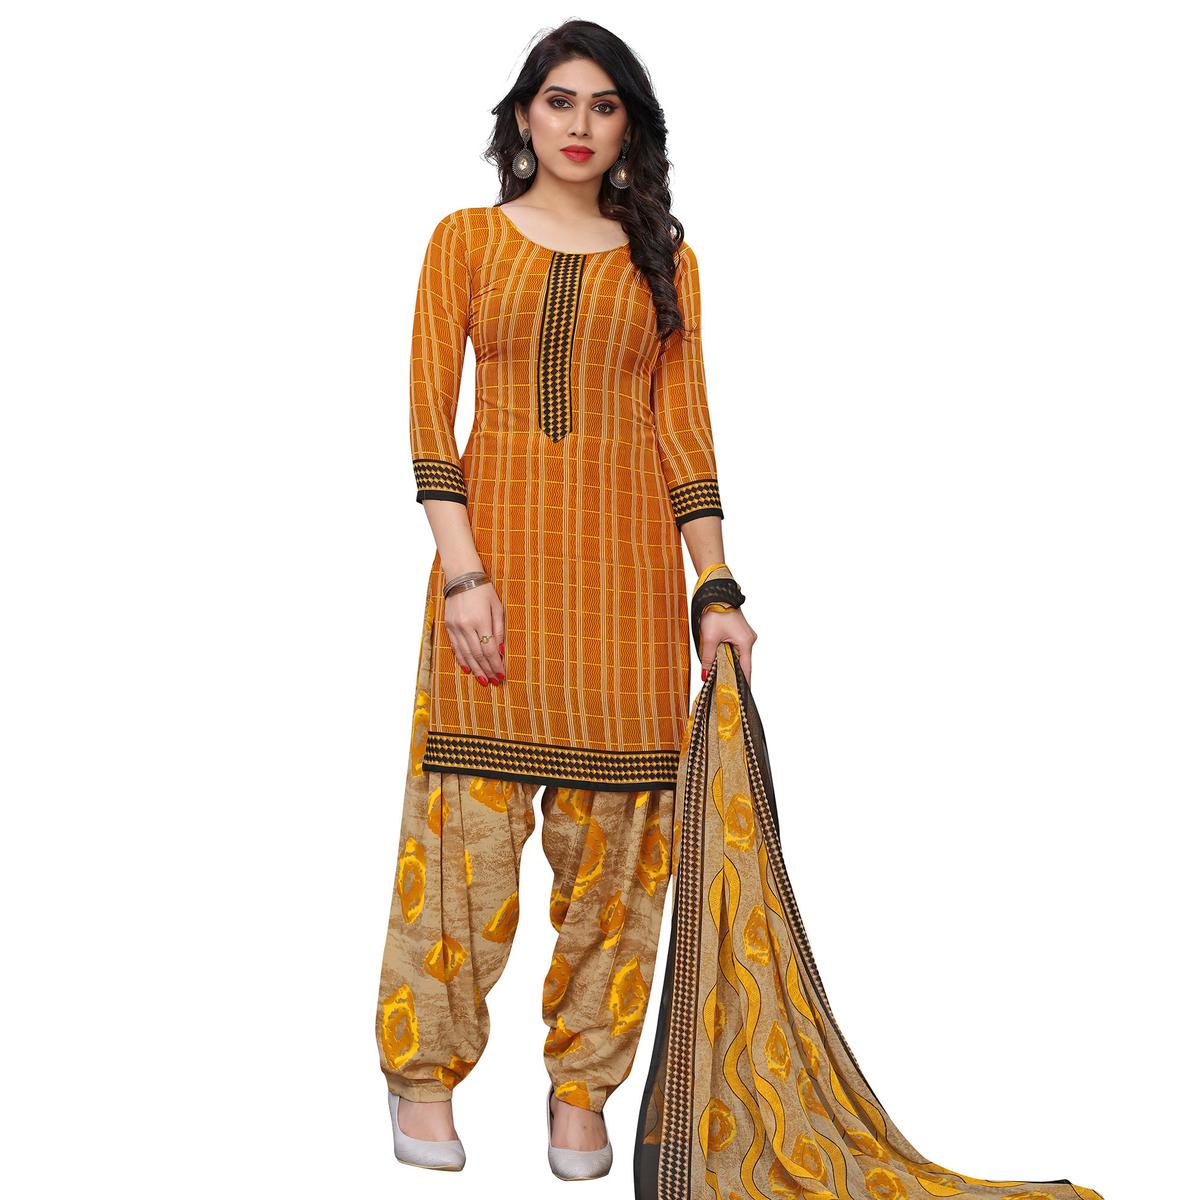 Ravishing Yellow Colored Casual Wear Printed French Crepe Patiala Dress Material